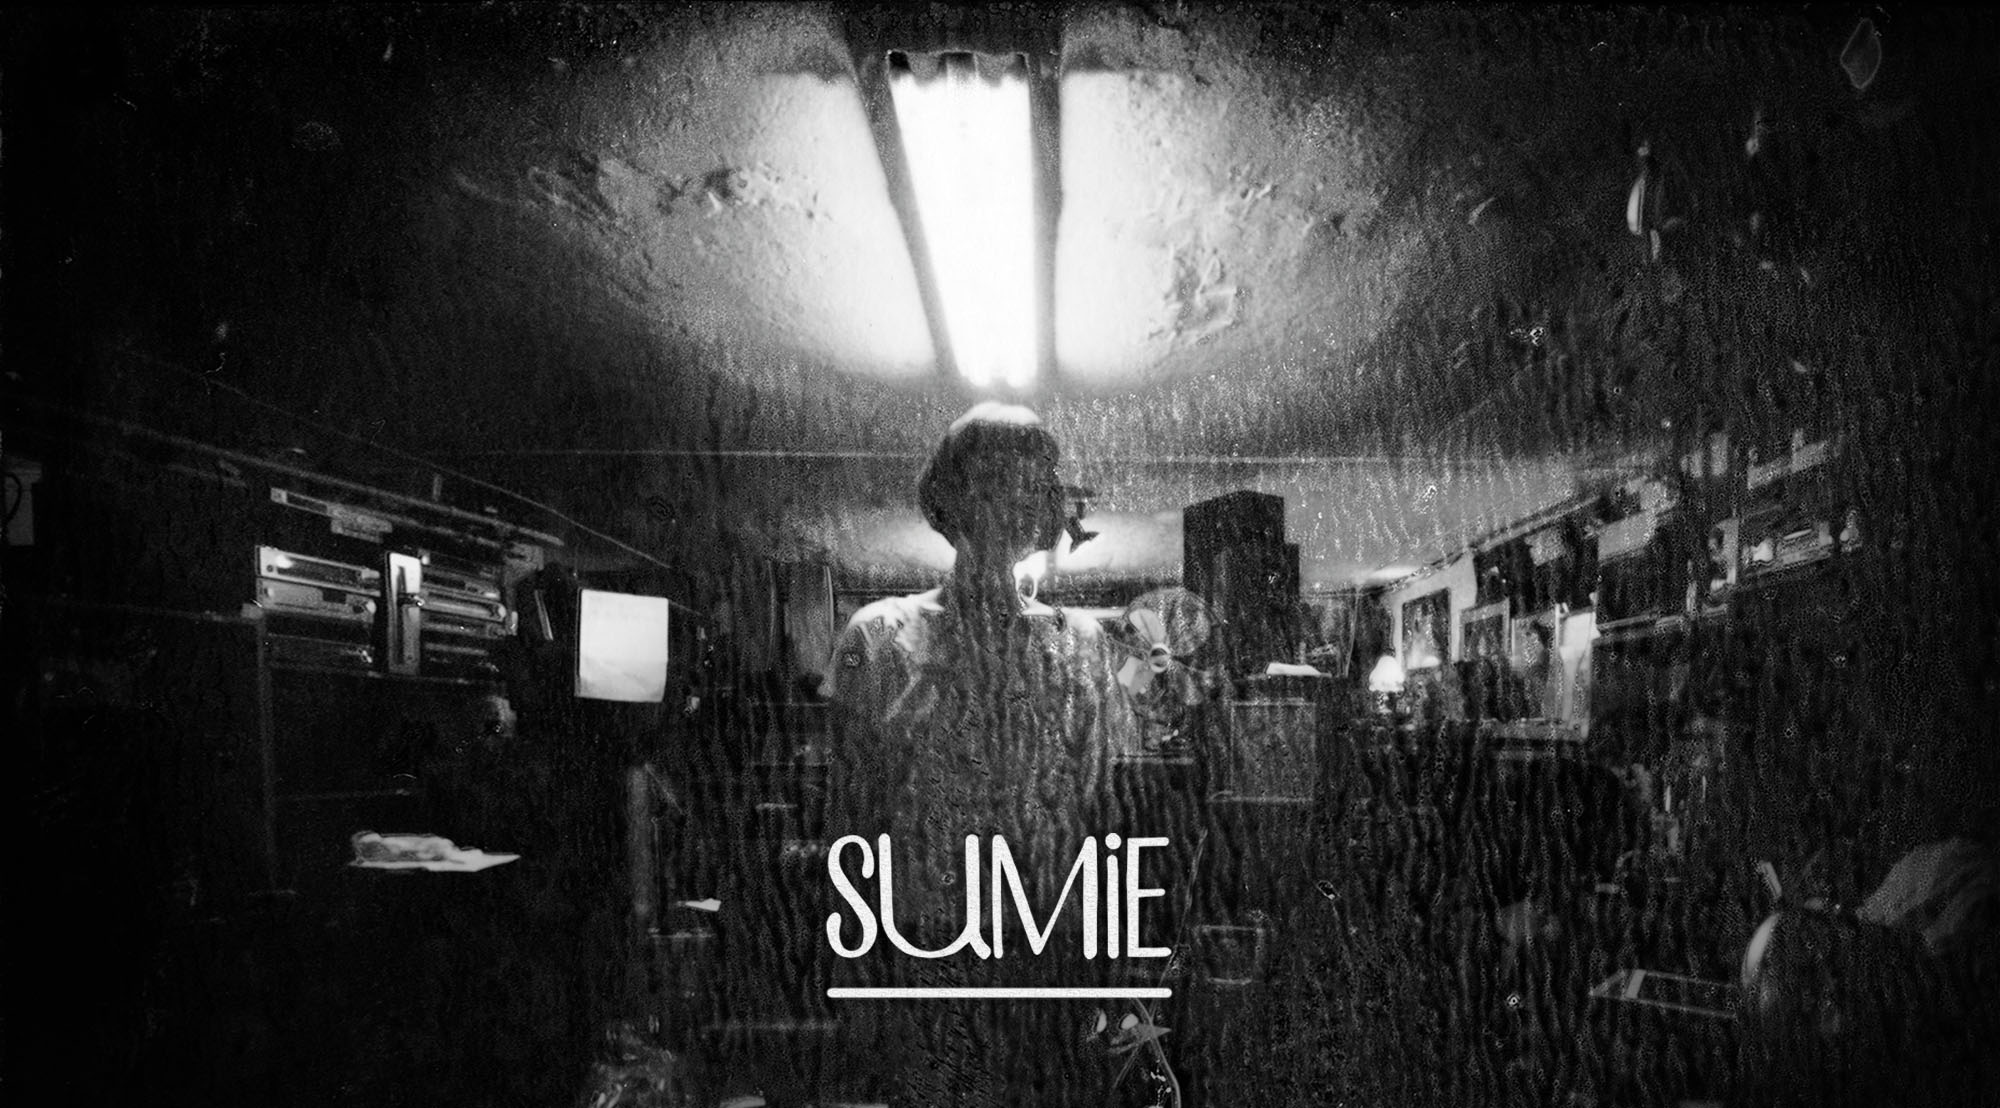 Self-titled debut from Sumie hits shelves Dec. 3rd